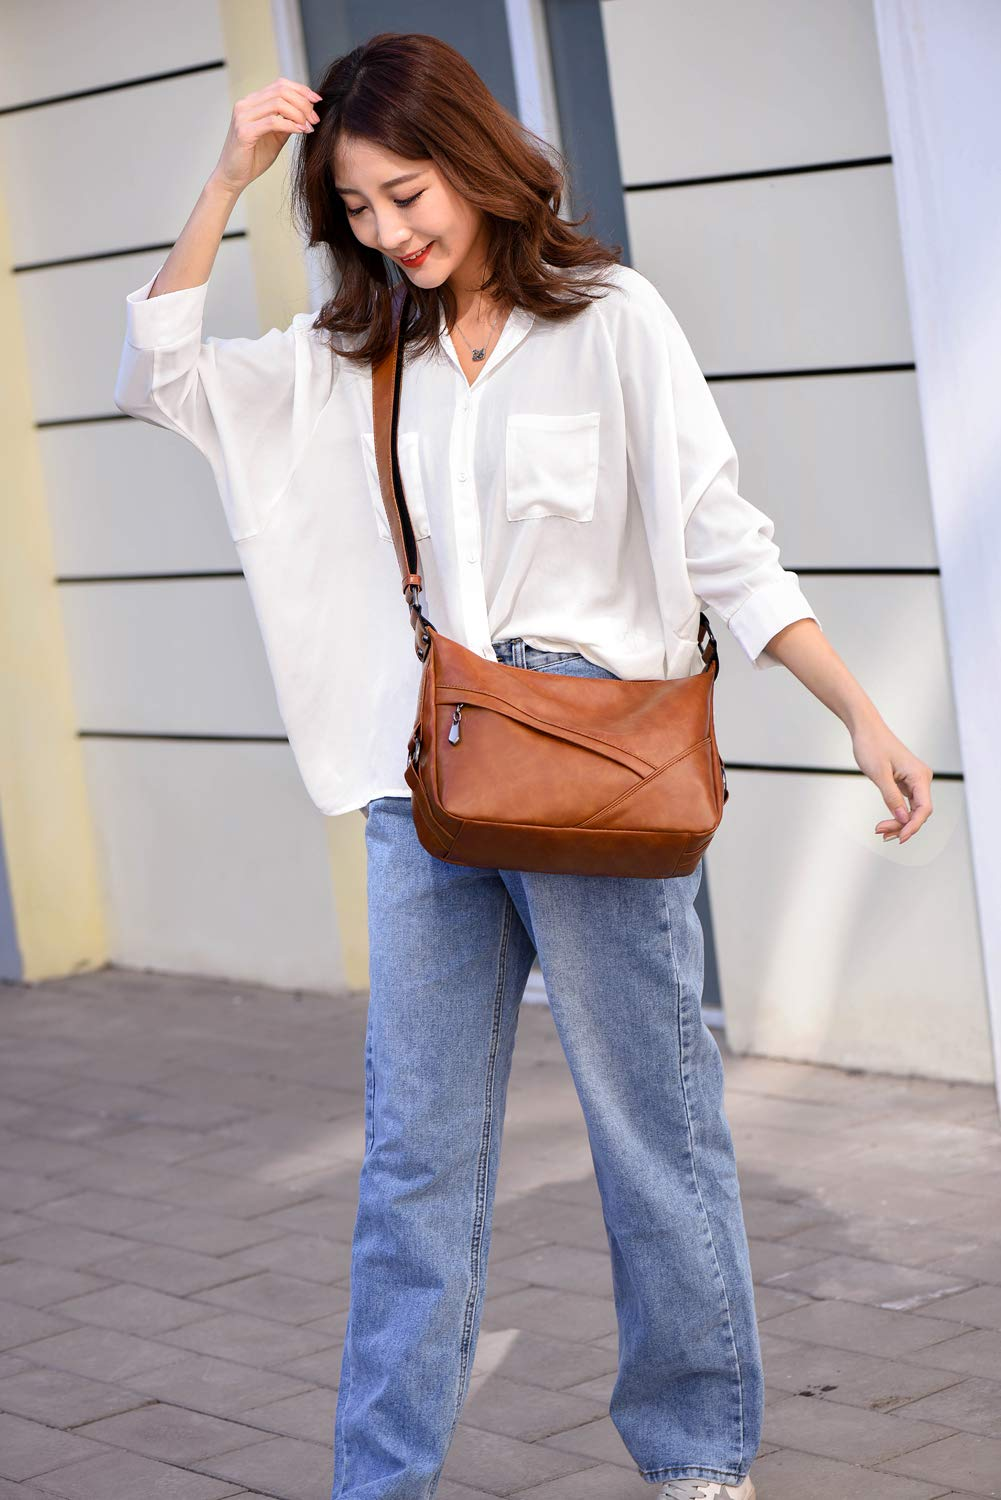 Women's Retro Sling Shoulder Bag from Covelin, Leather Crossbody Tote Handbag New Brown by Covelin (Image #7)